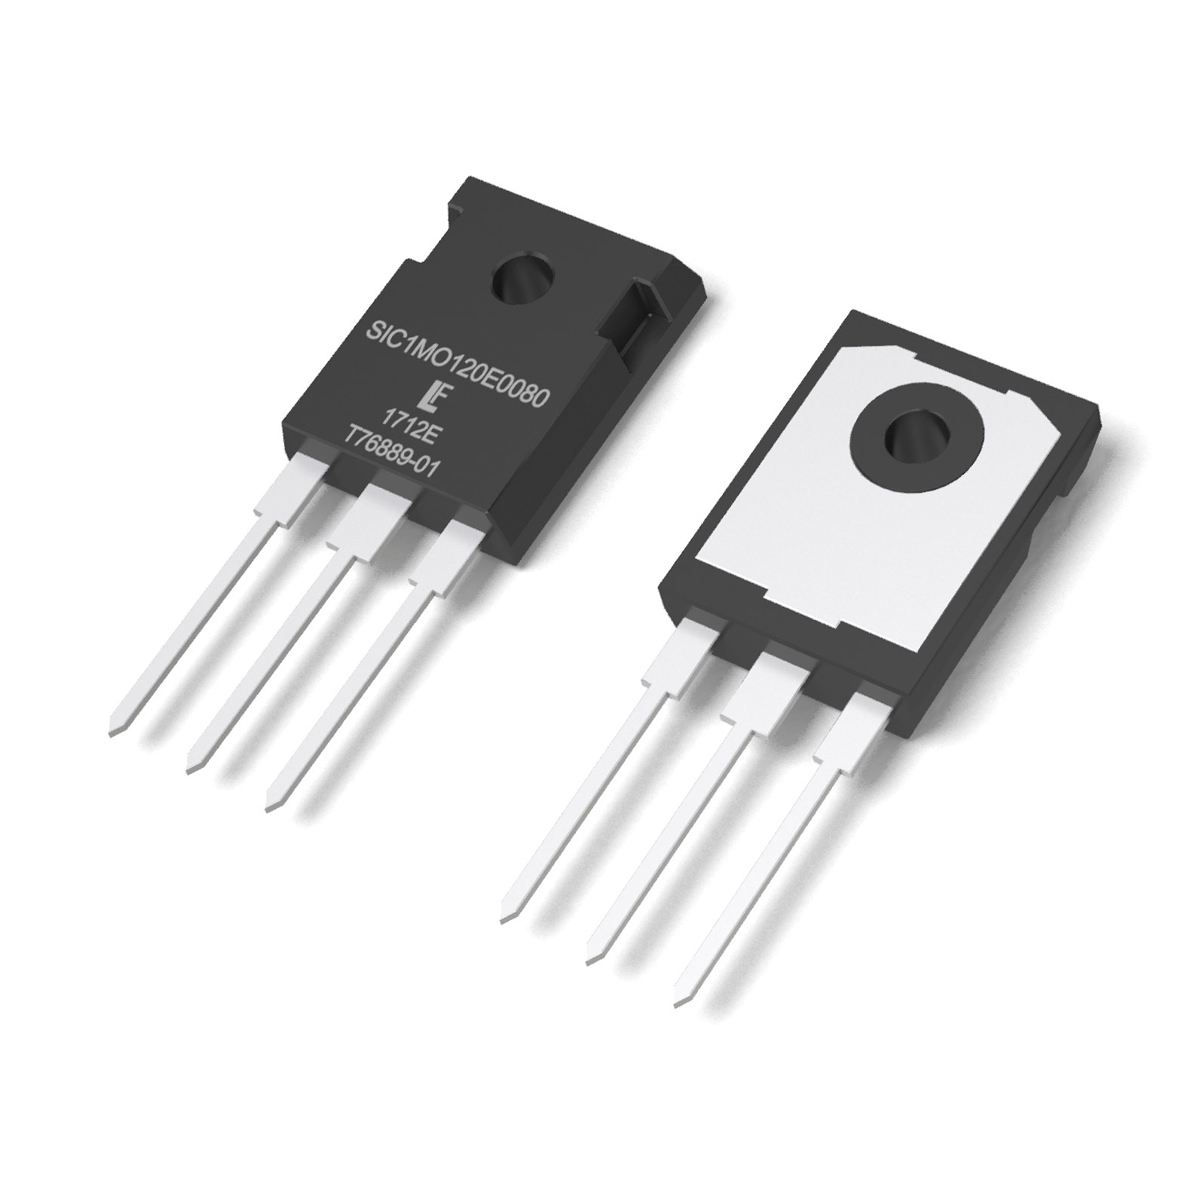 First Littelfuse Sic Mosfet Provides Ultra Fast Switching In Power Solid State Relay 1200v Mosfets Image